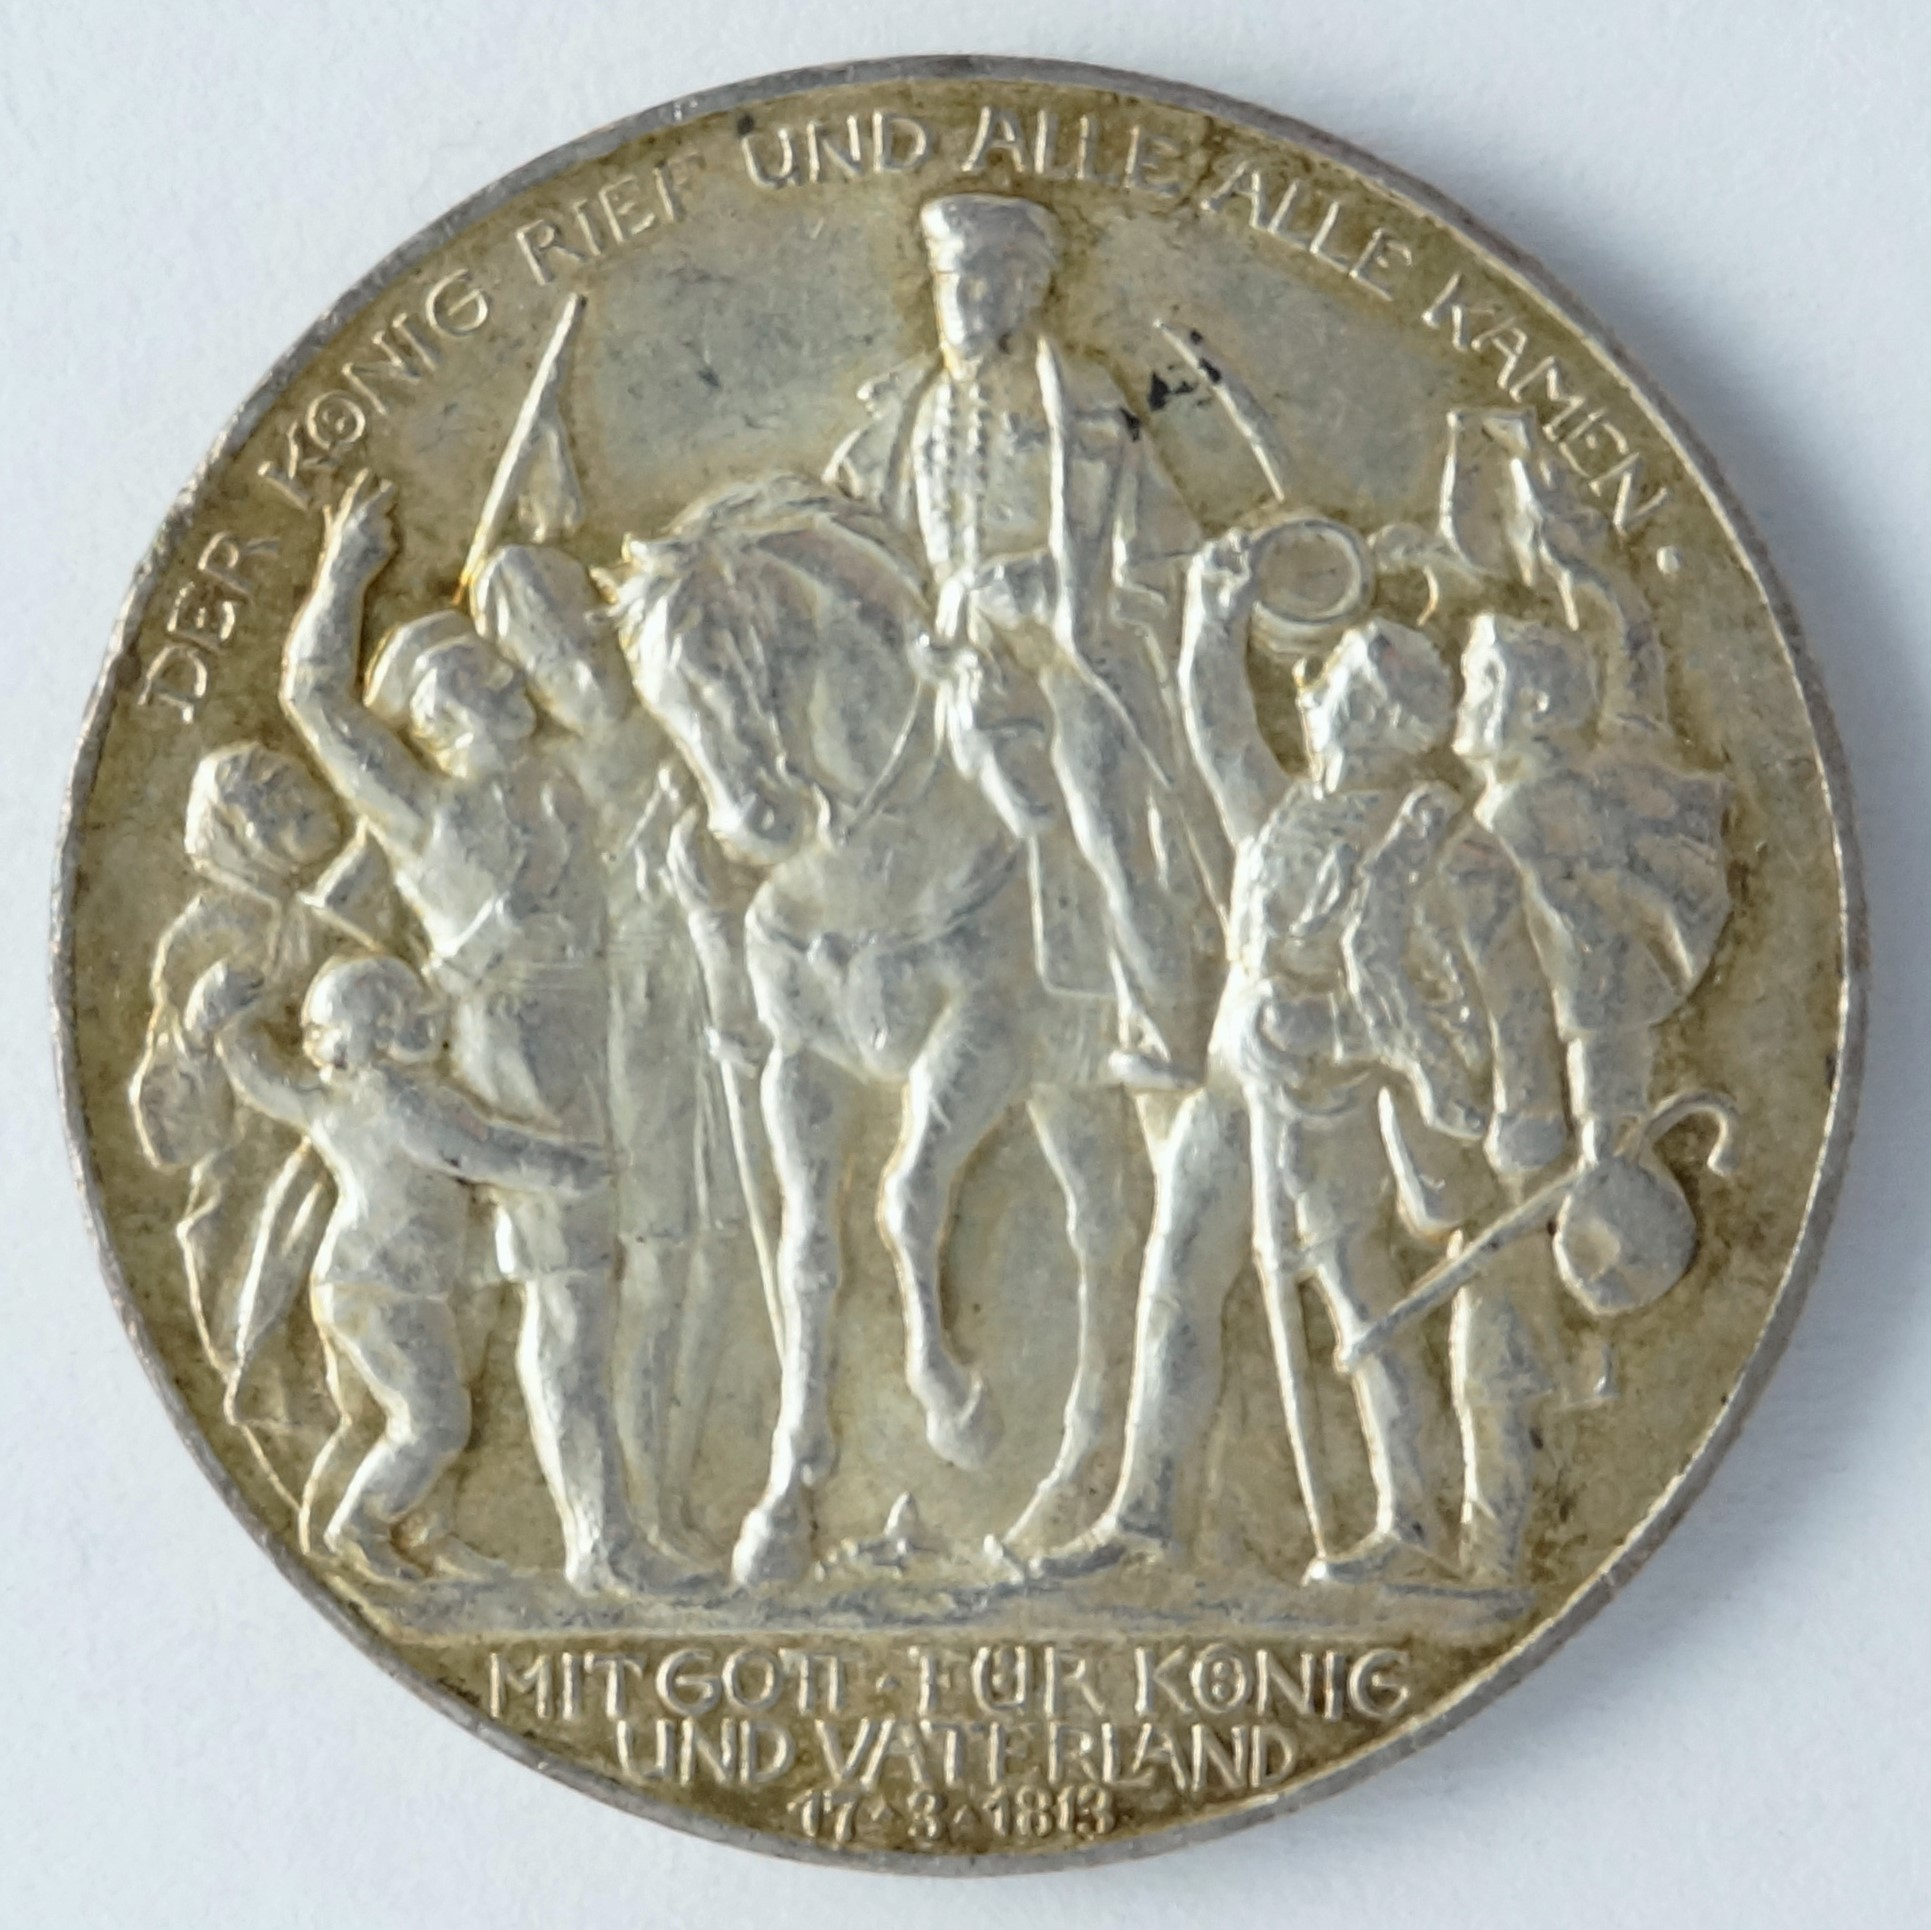 Prussia, 3 marks 1913